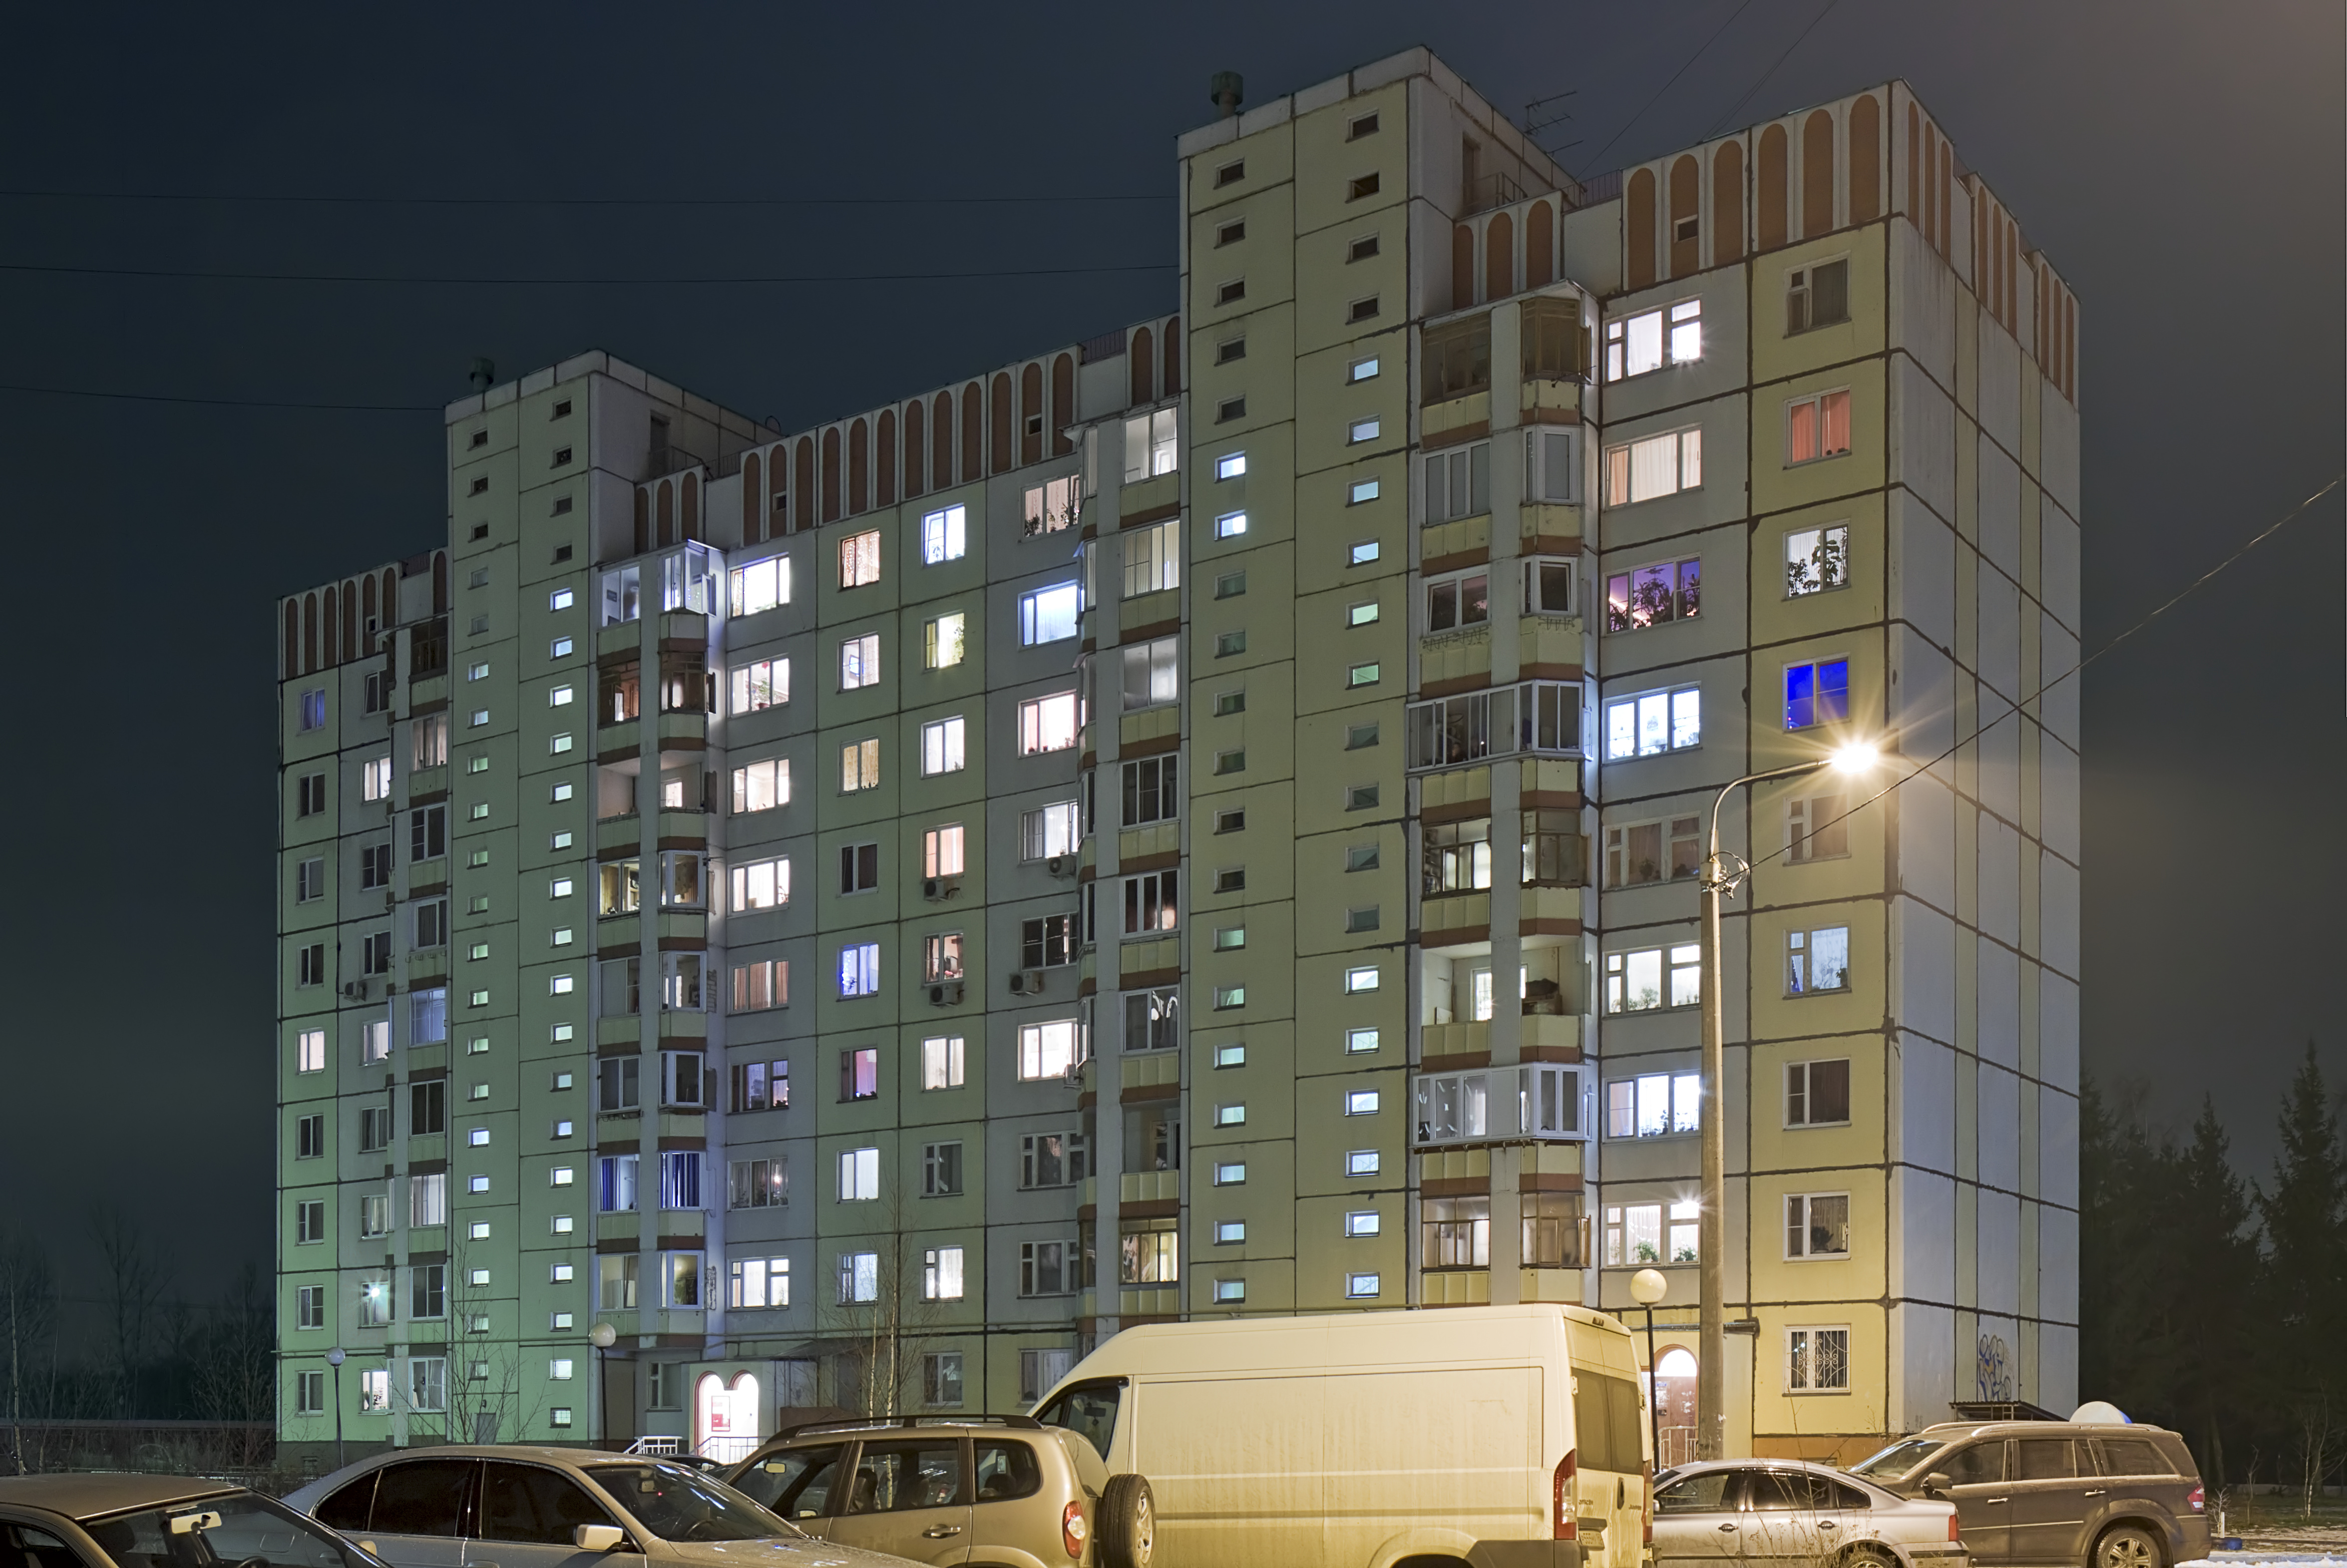 New programs of Gorodok may appear on the air on Russia-1 TV channel 12.11.2012 56